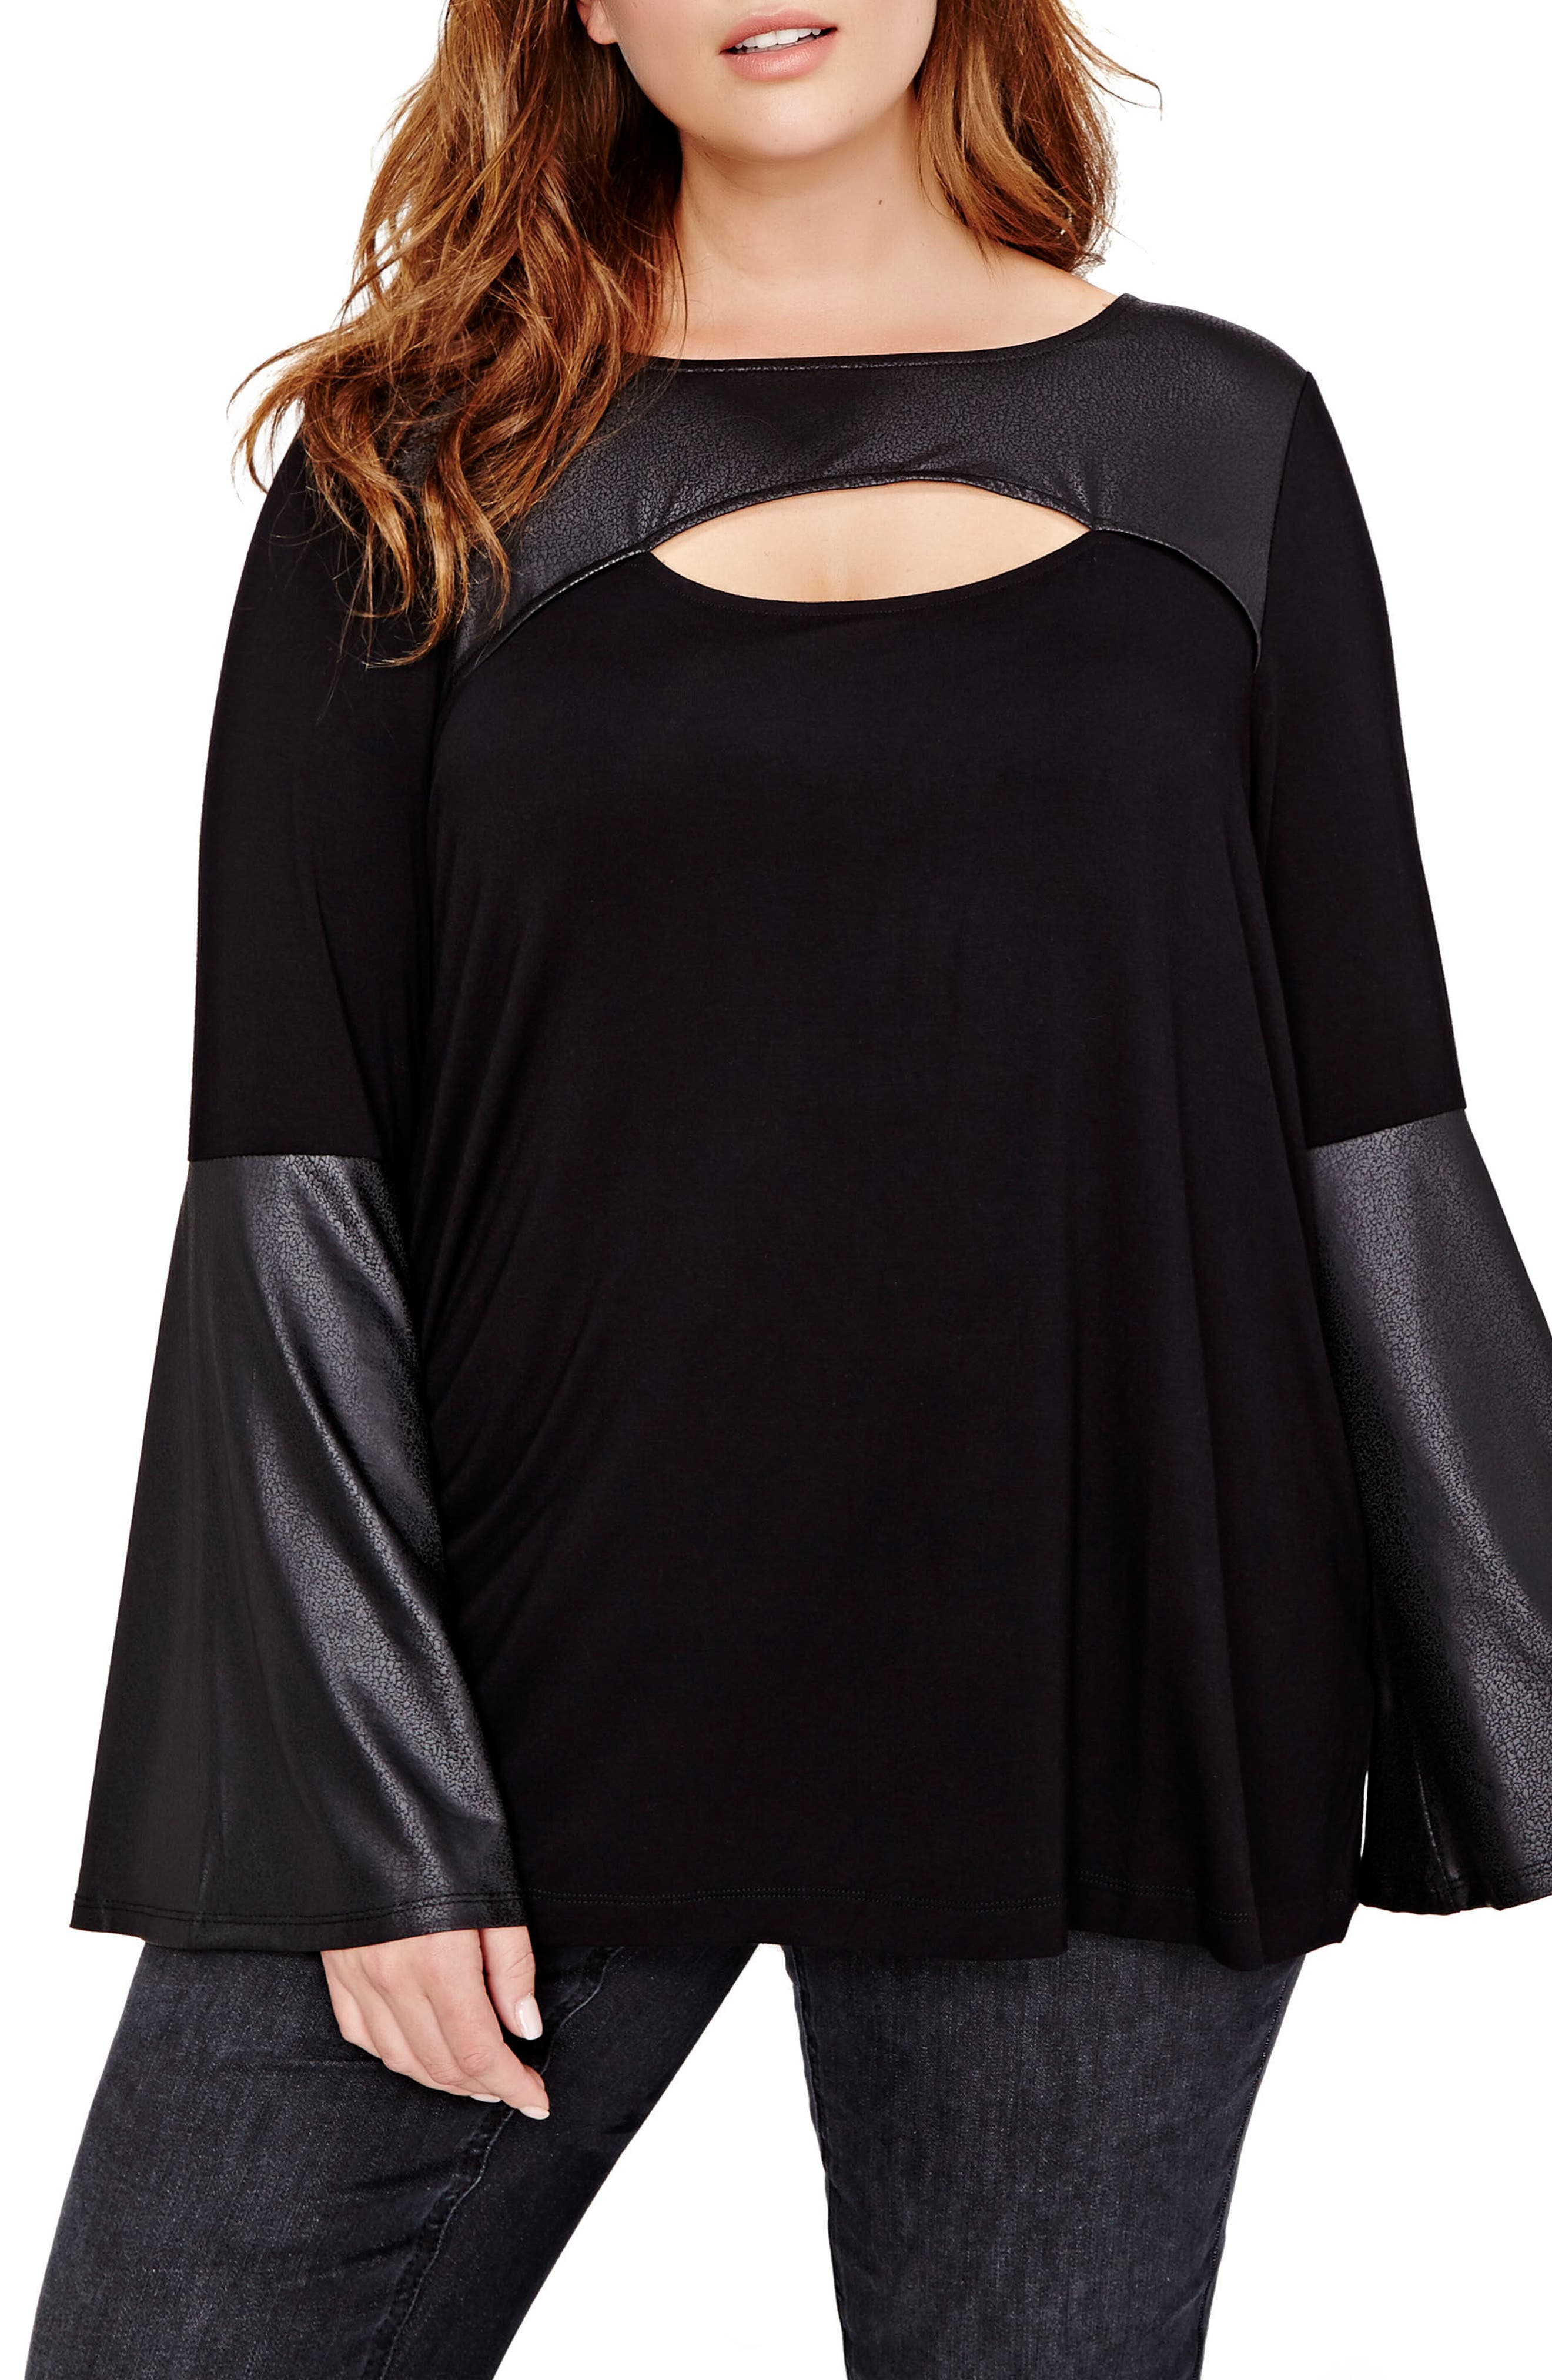 ADDITION ELLE LOVE AND LEGEND Bell Sleeve Peekaboo Top (Plus Size)